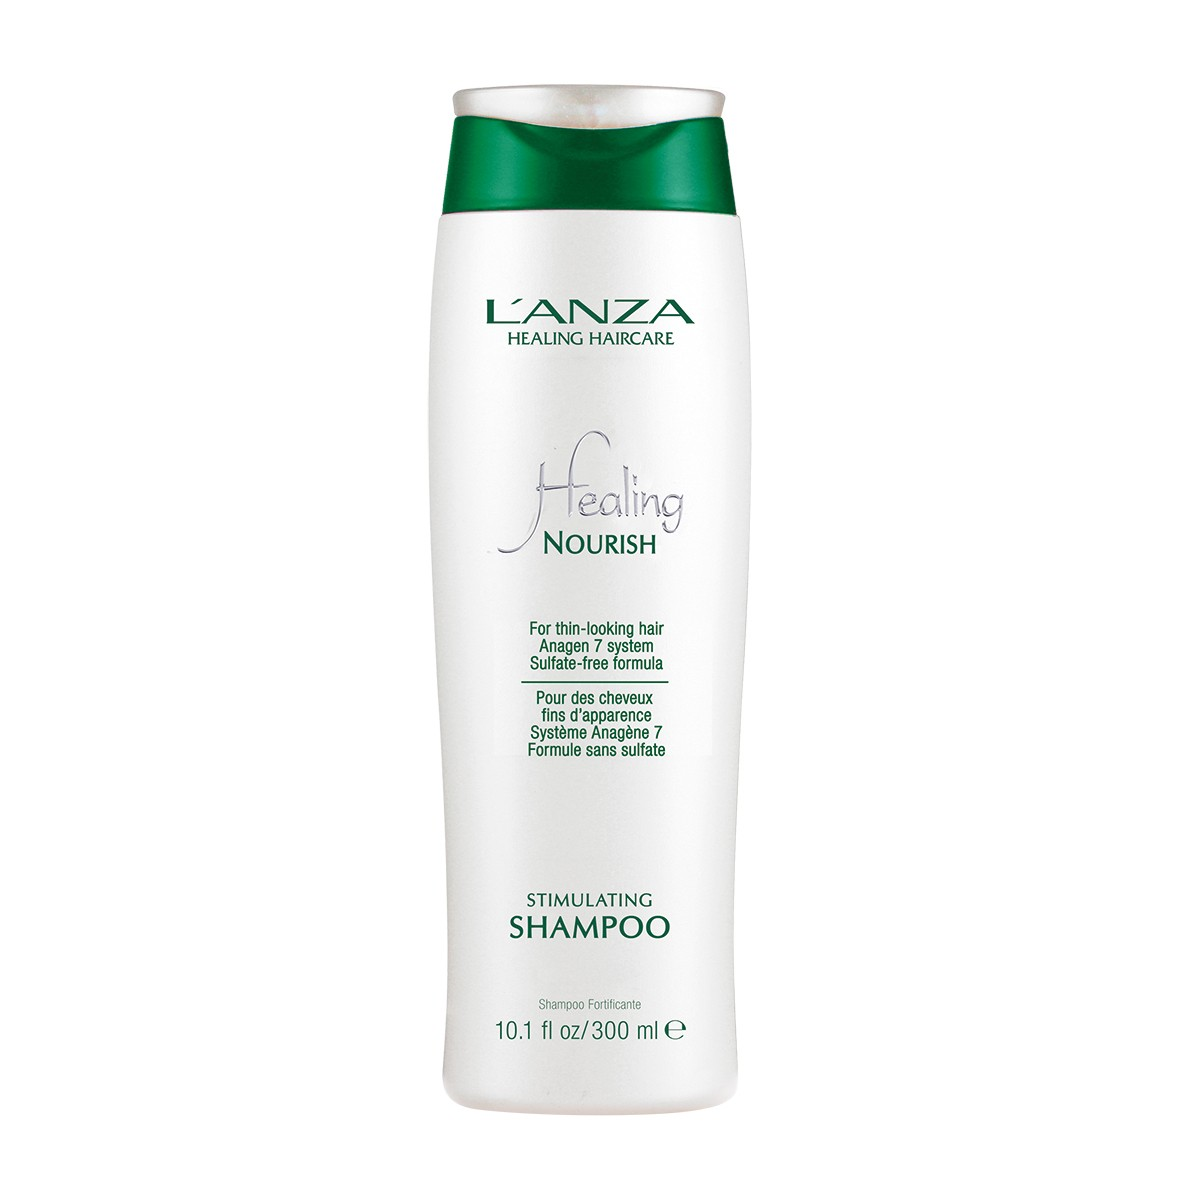 L'ANZA Healing Nourish Stimulating Shampoo 300 ml